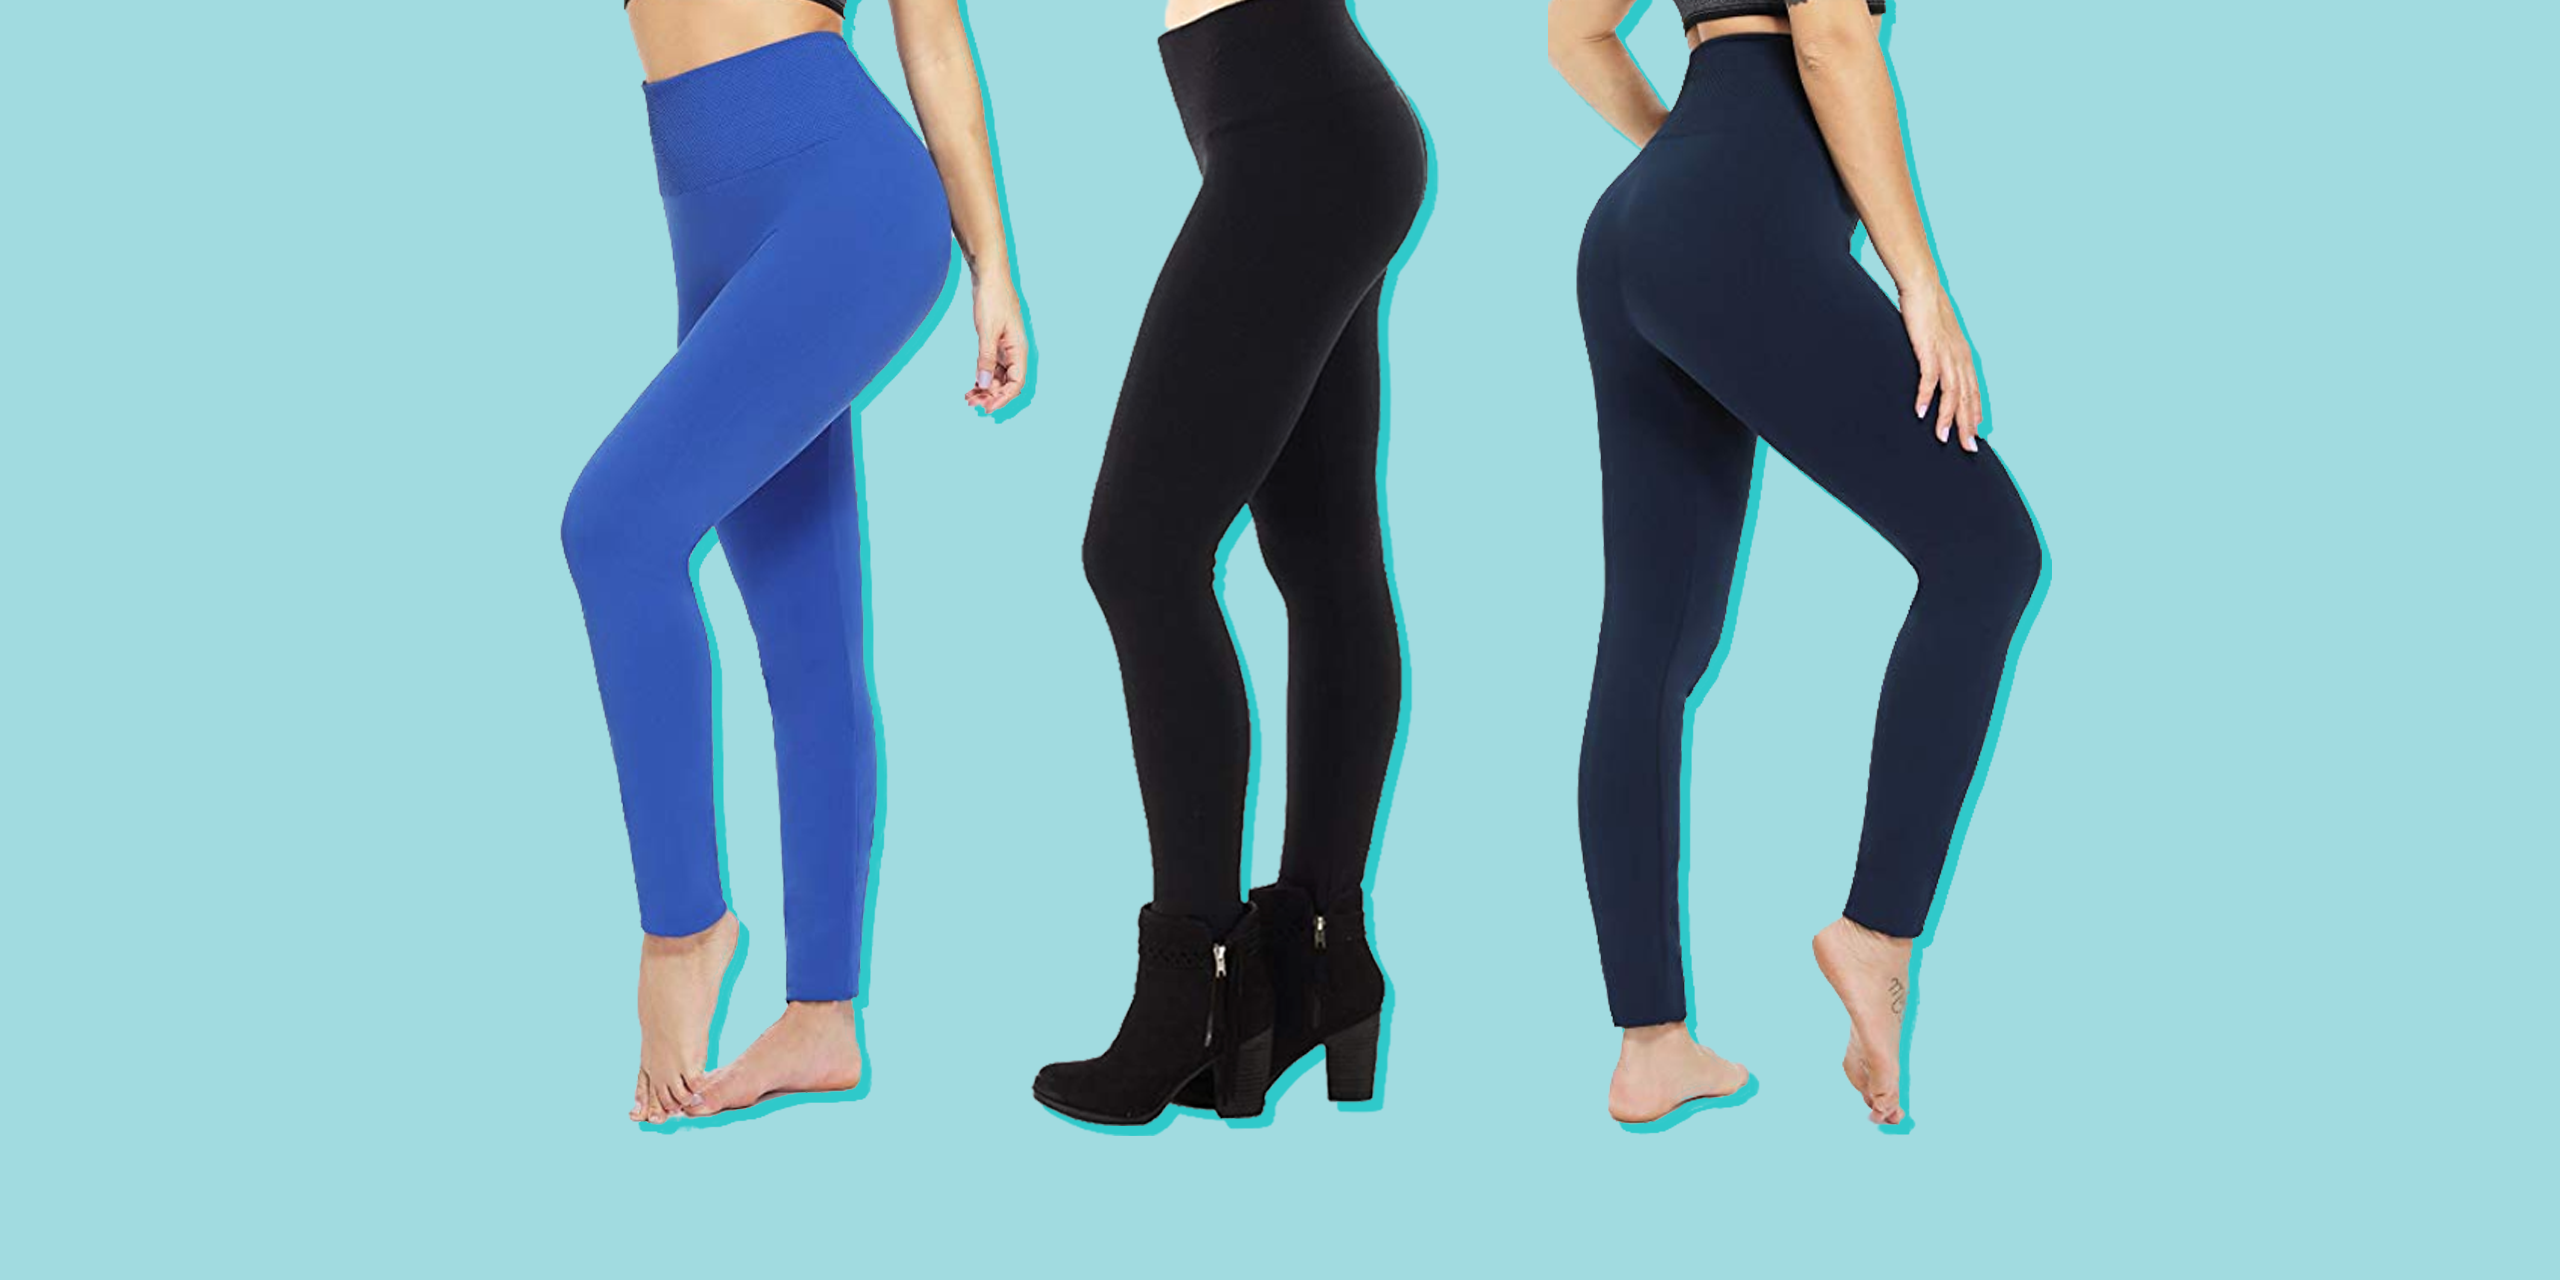 These $11 Fleece-Lined Leggings Are Perfect for Layering on Chilly Days